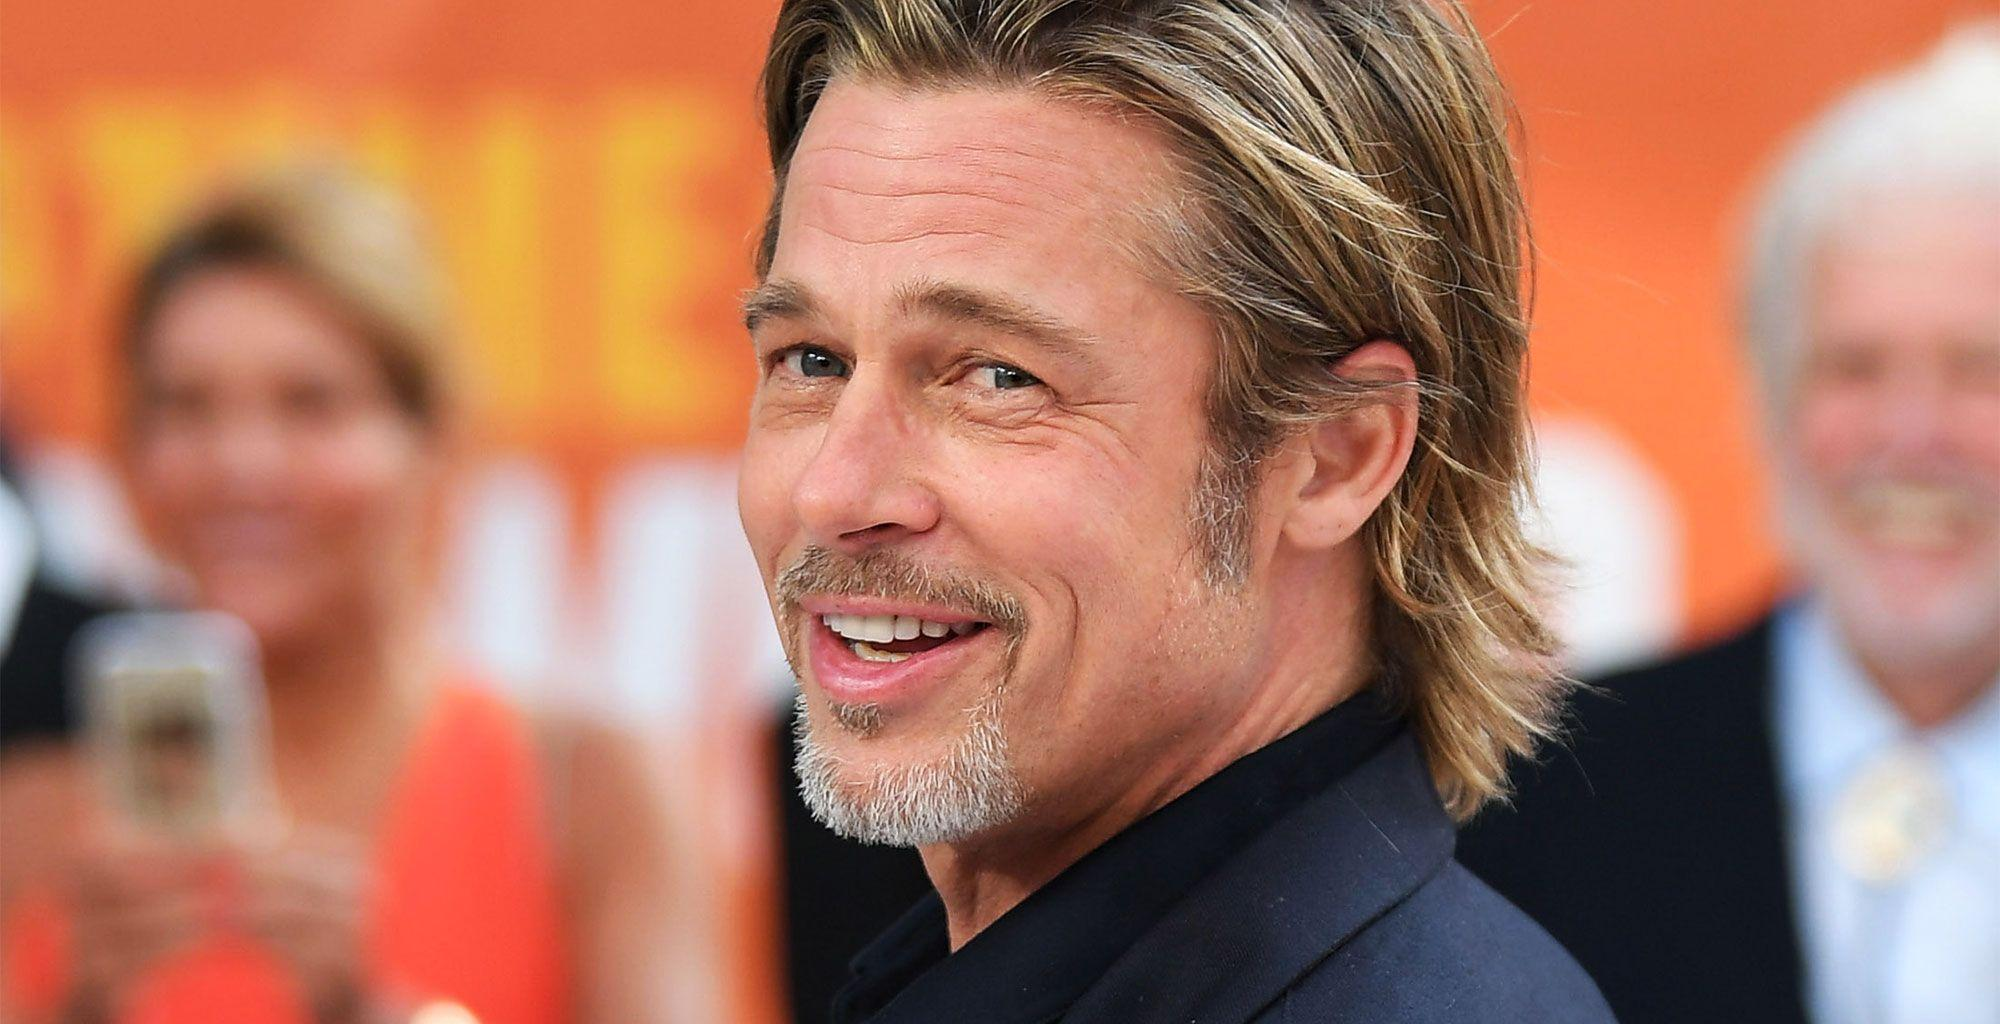 Brad Pitt Gets Candid About His Years In AA Getting Sober